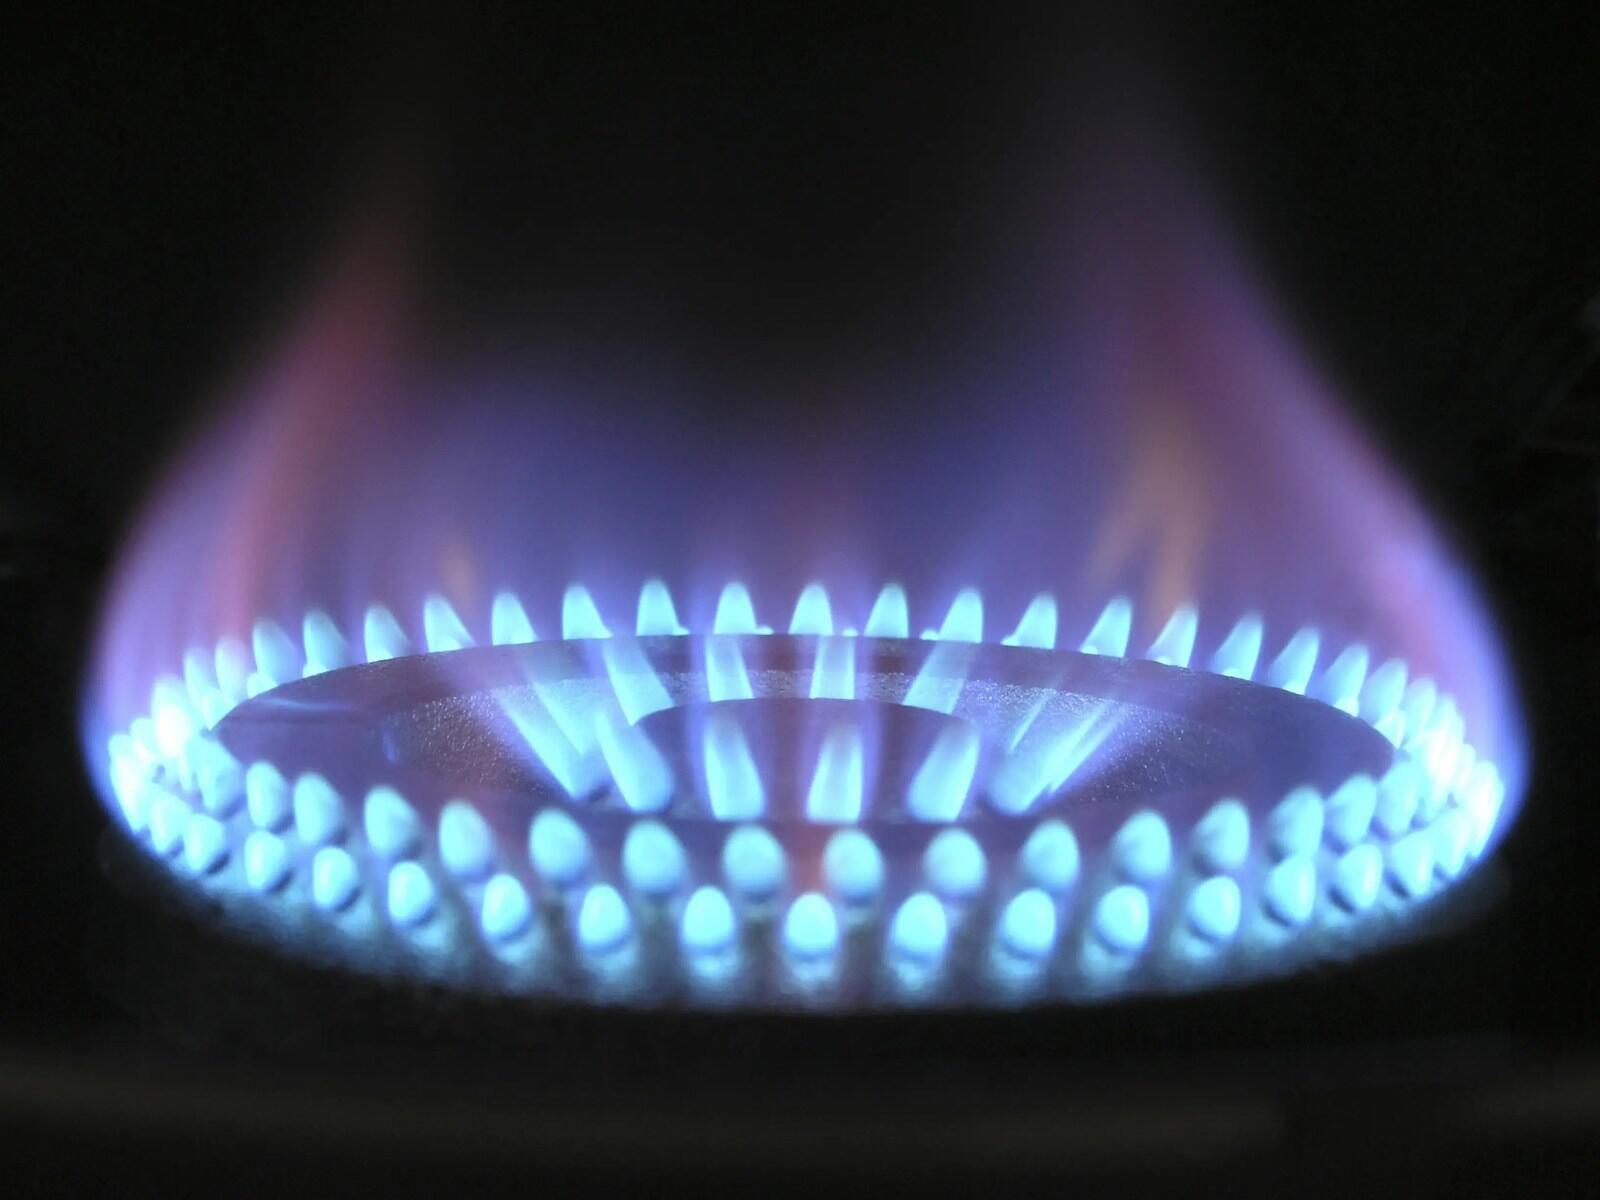 Why does the gas crisis matter so much?